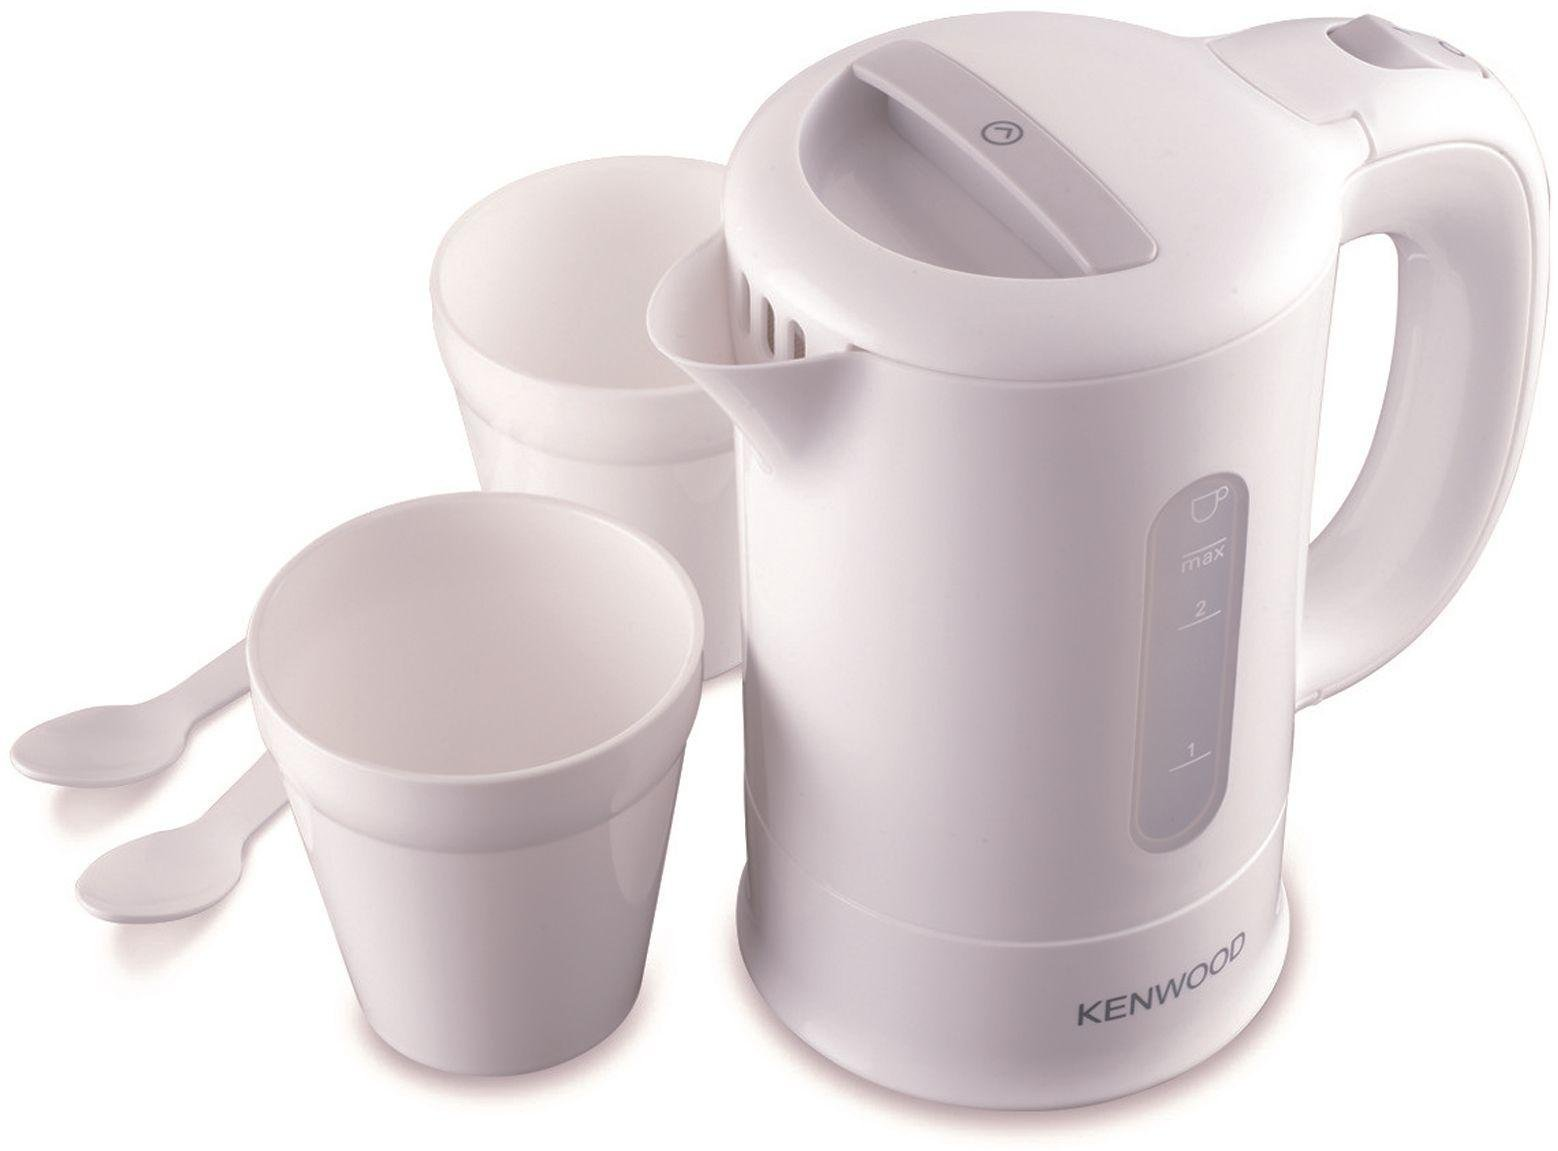 Kenwood - Travel - Kettle - White